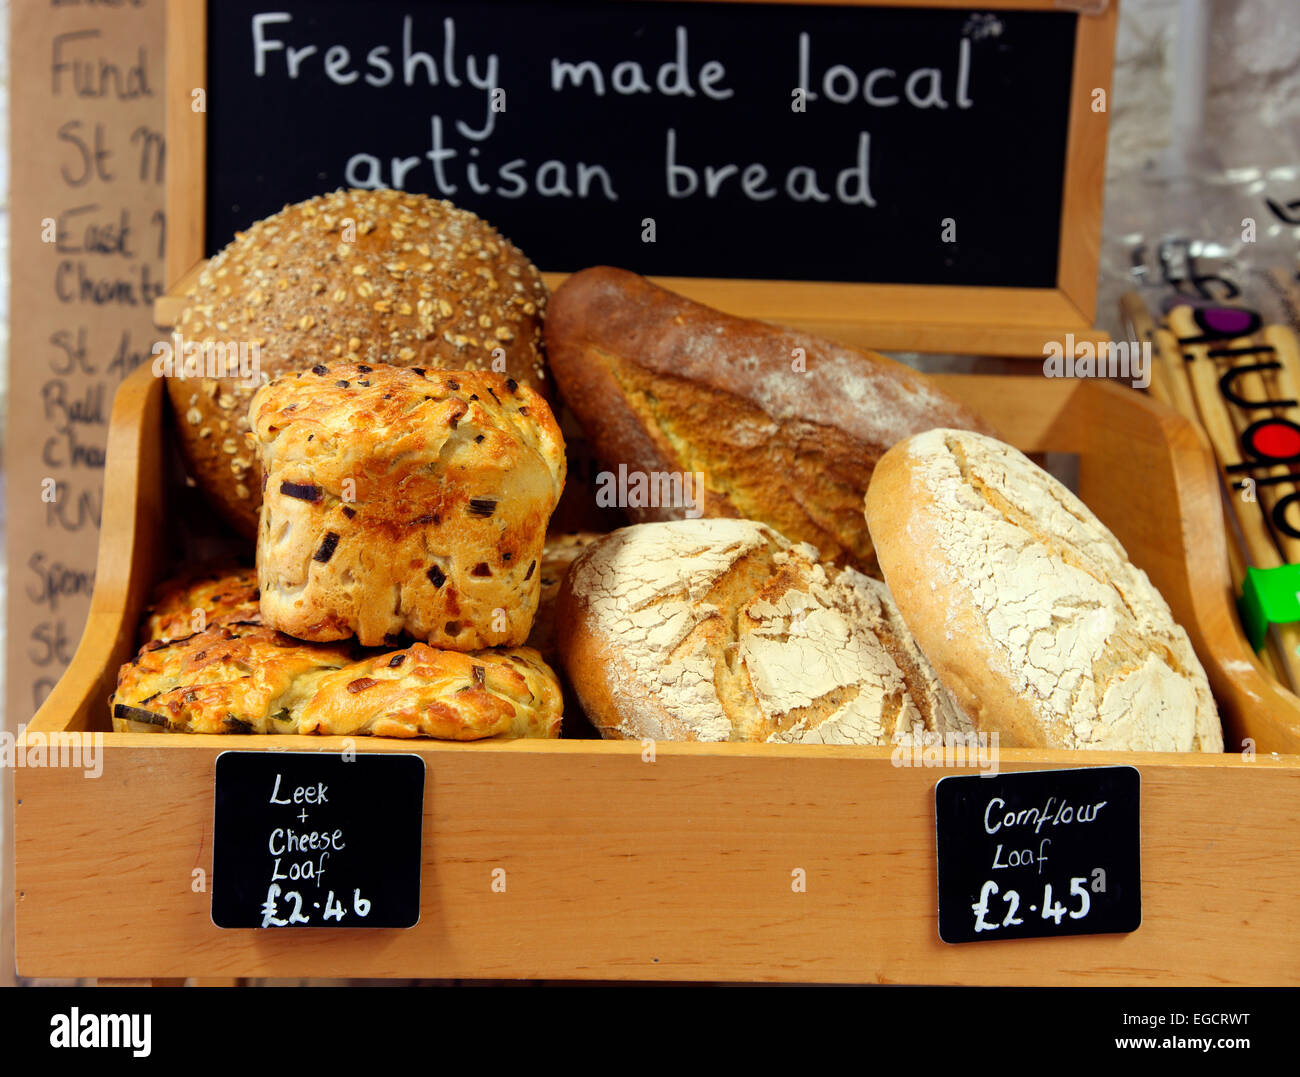 Artisan bread on sale at the Ardross Farm Shop - Stock Image